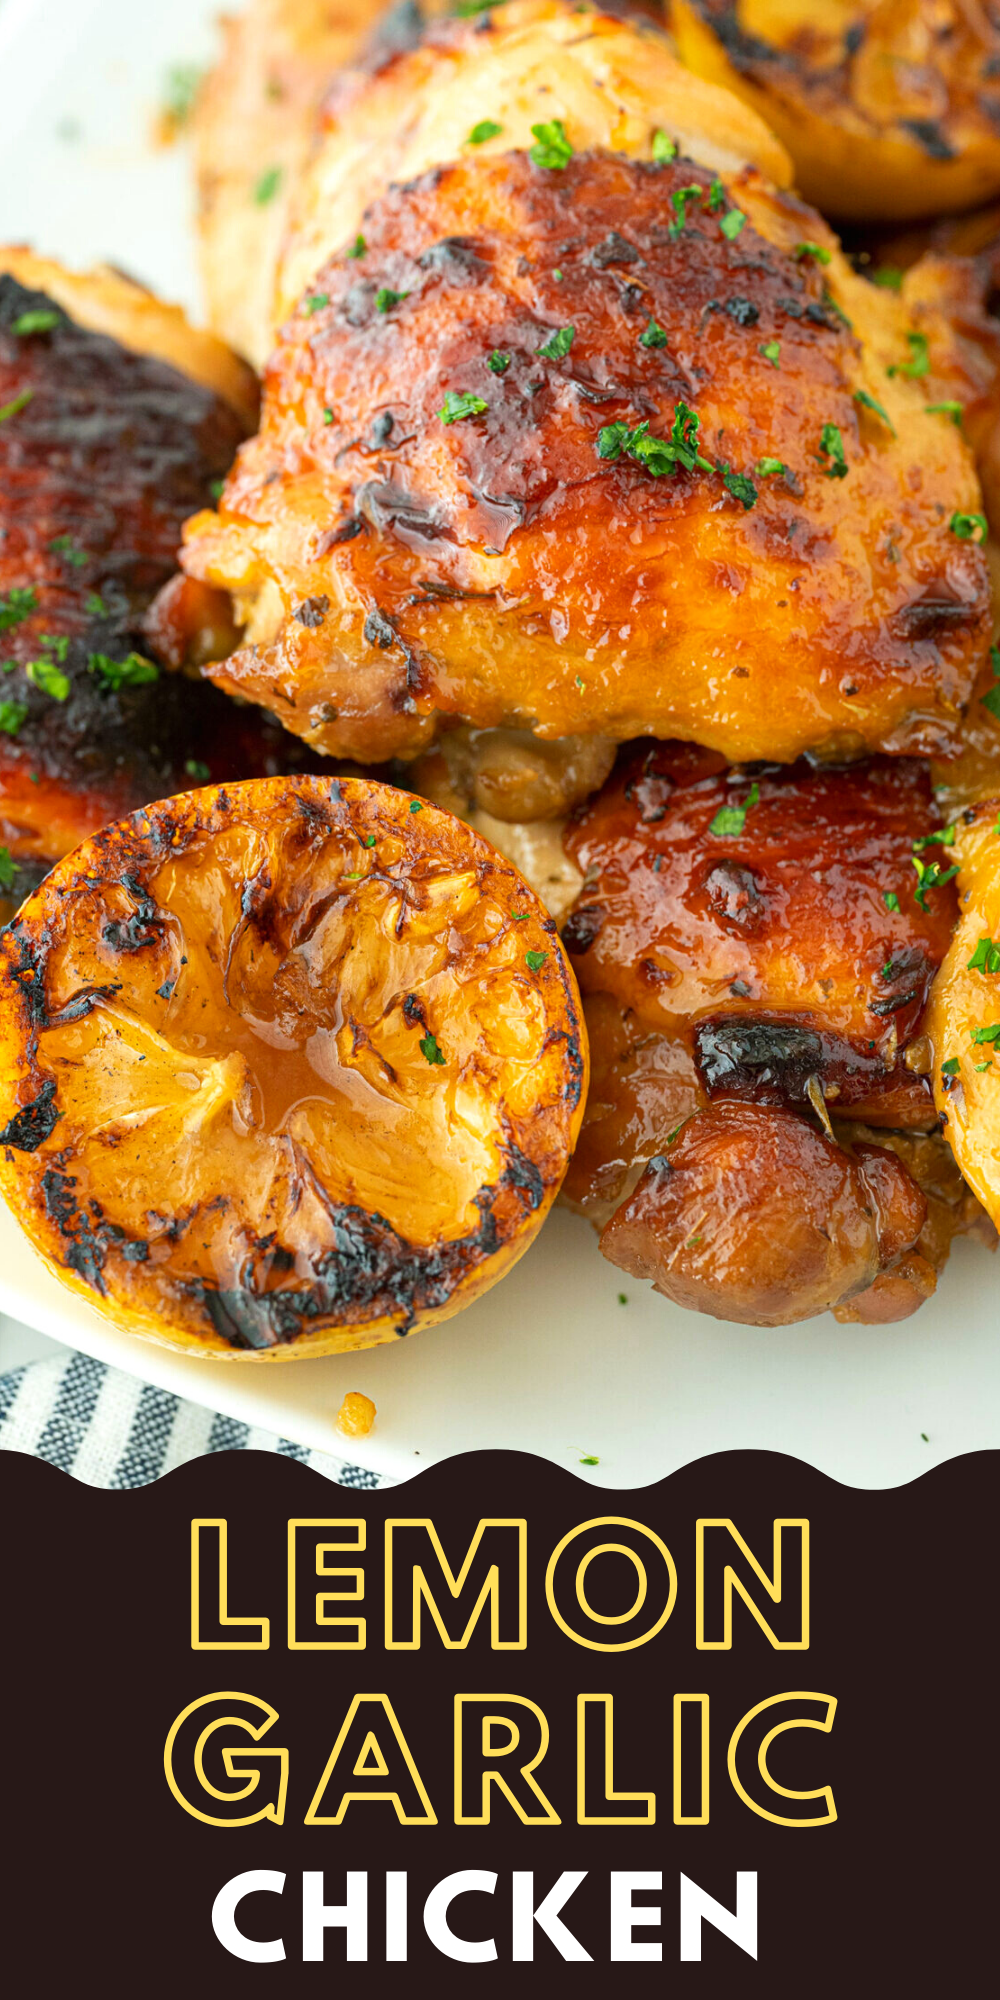 These lemon garlic chicken thighs are baked or grilled to tender, juicy perfection after marinating for a few hours.